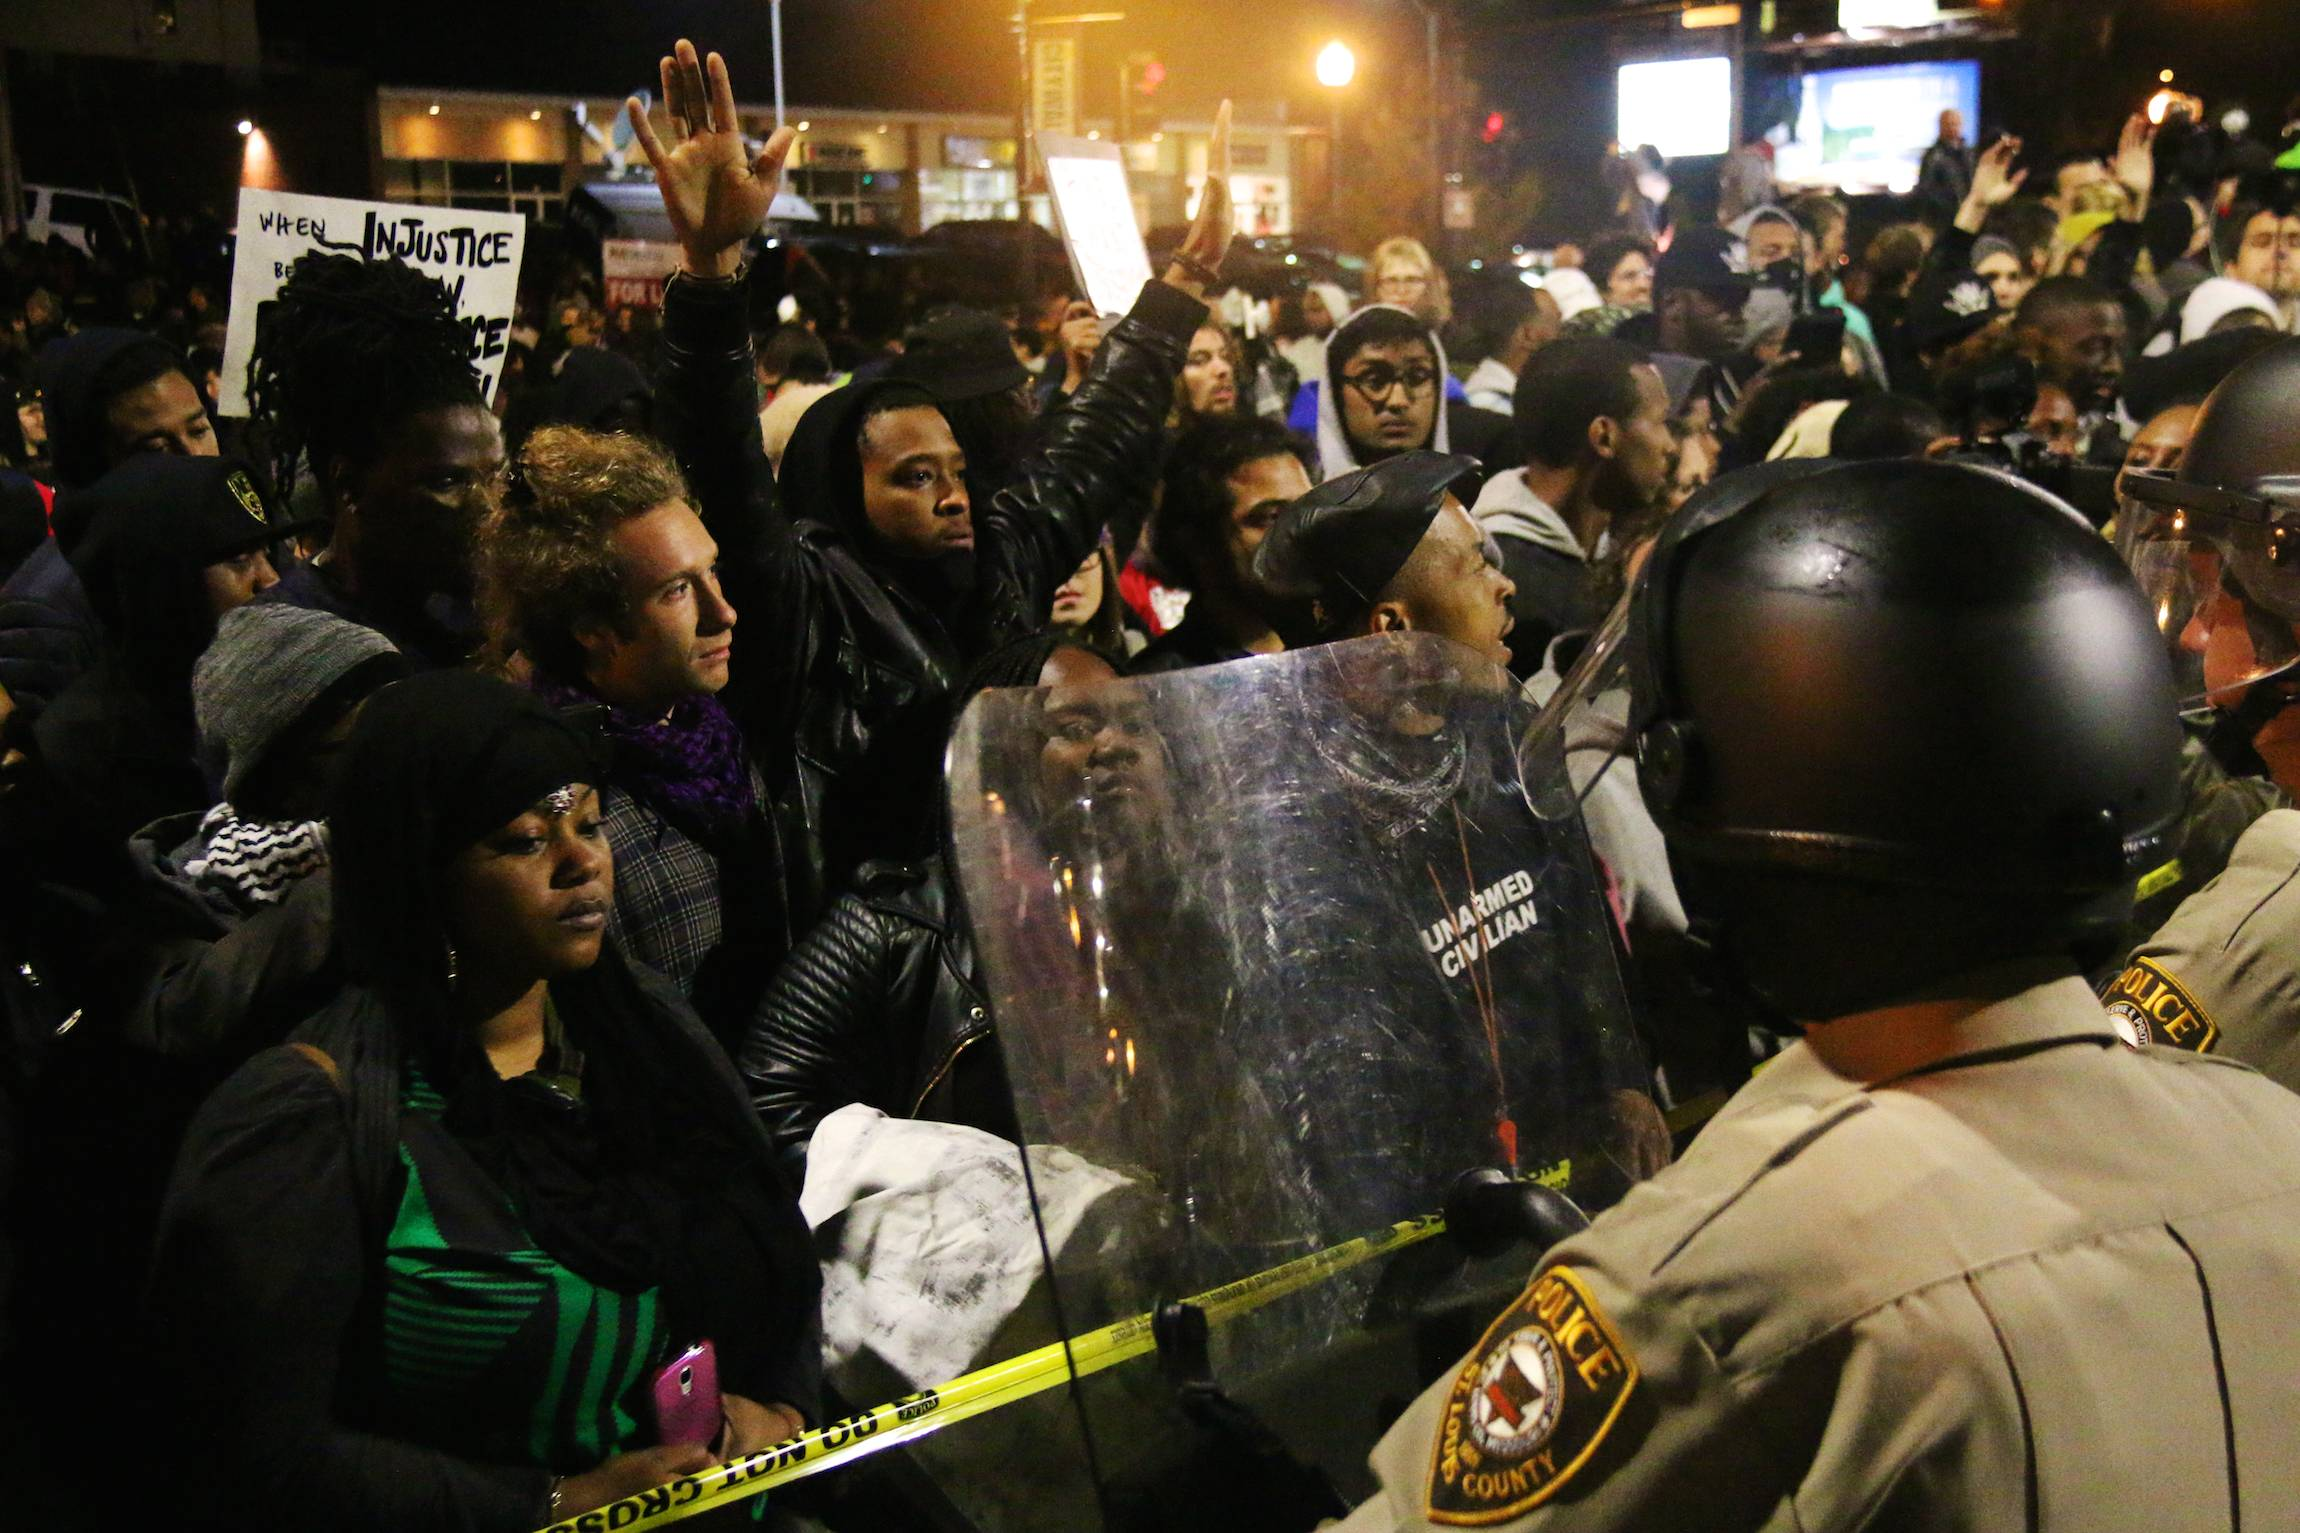 Protesters chant, raising their hands, in front of the police department in Ferguson, Mo, Oct. 11, 2014. The pose has become a symbol in the aftermath of the killing of Michael Brown, which sparked violent protests in the St. Louis suburb.